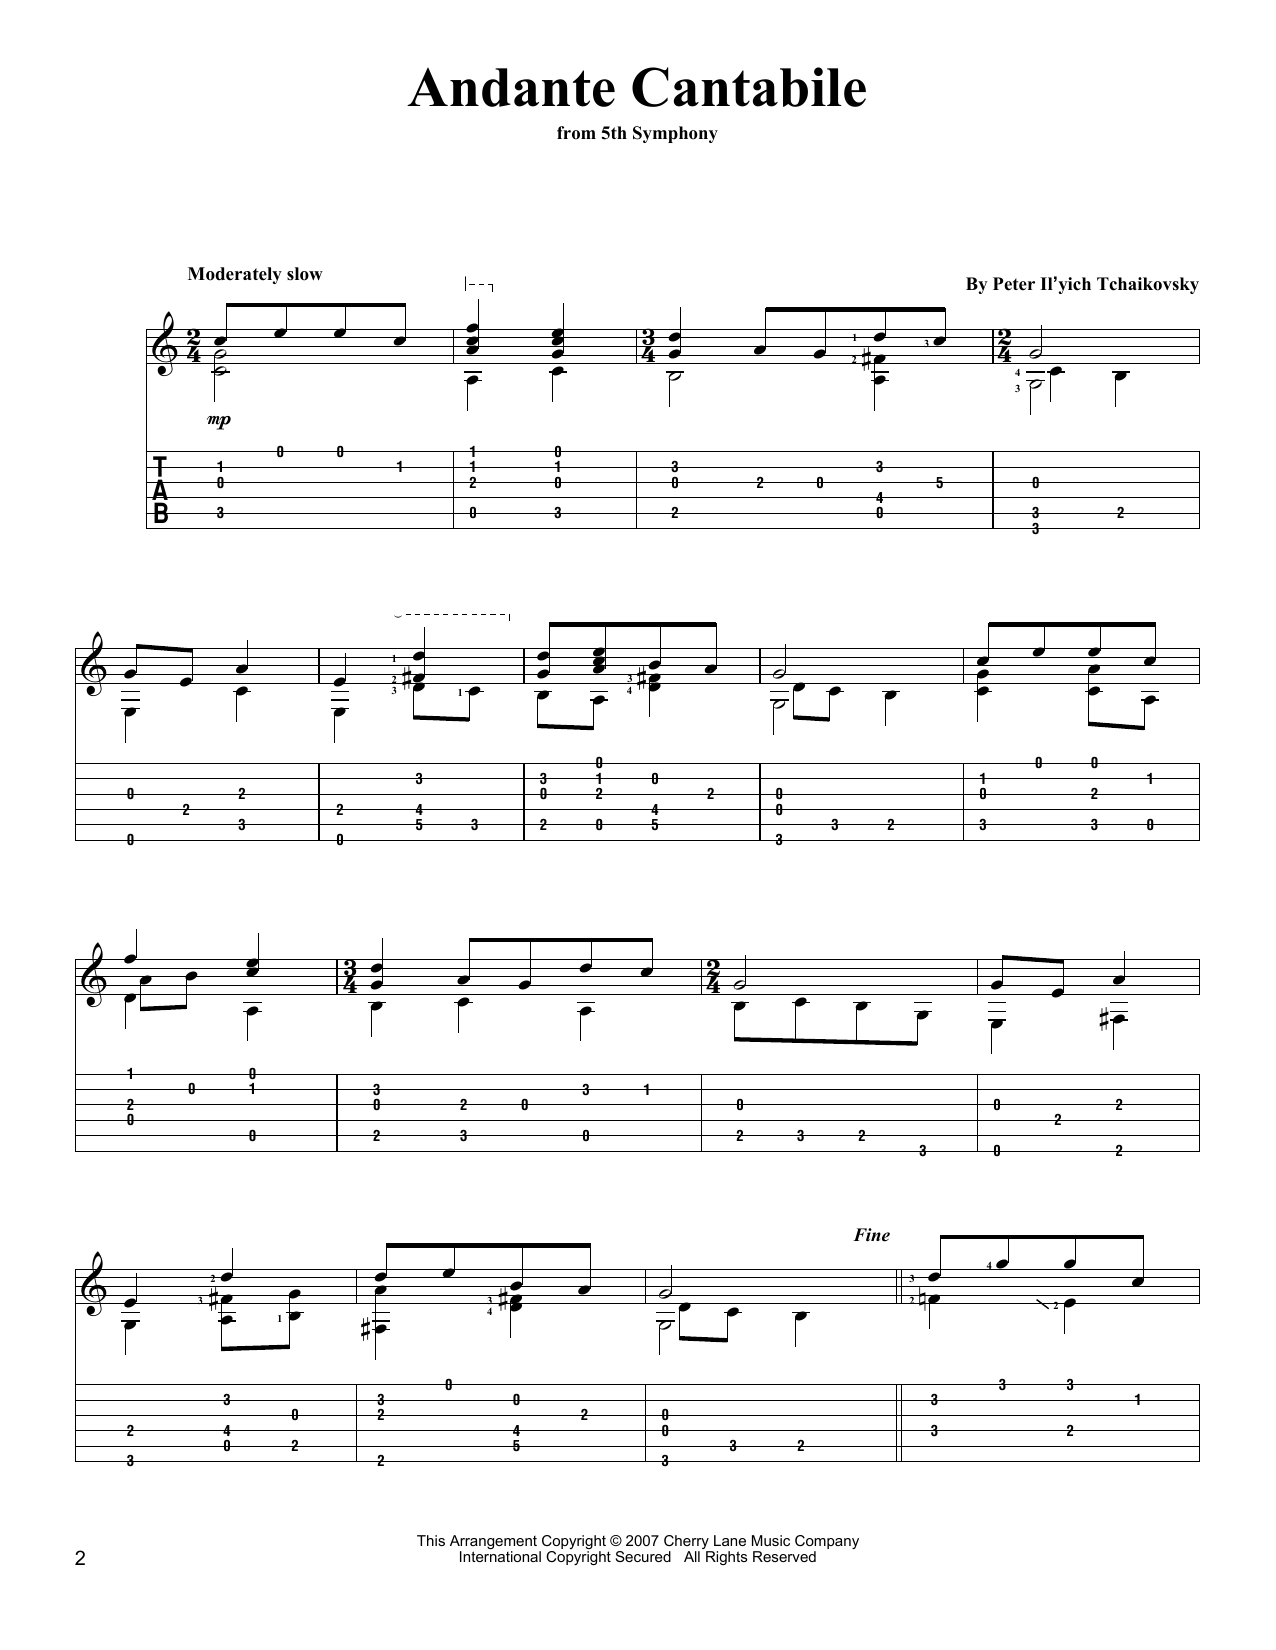 Pyotr Il'yich Tchaikovsky Andante Cantabile sheet music notes and chords. Download Printable PDF.